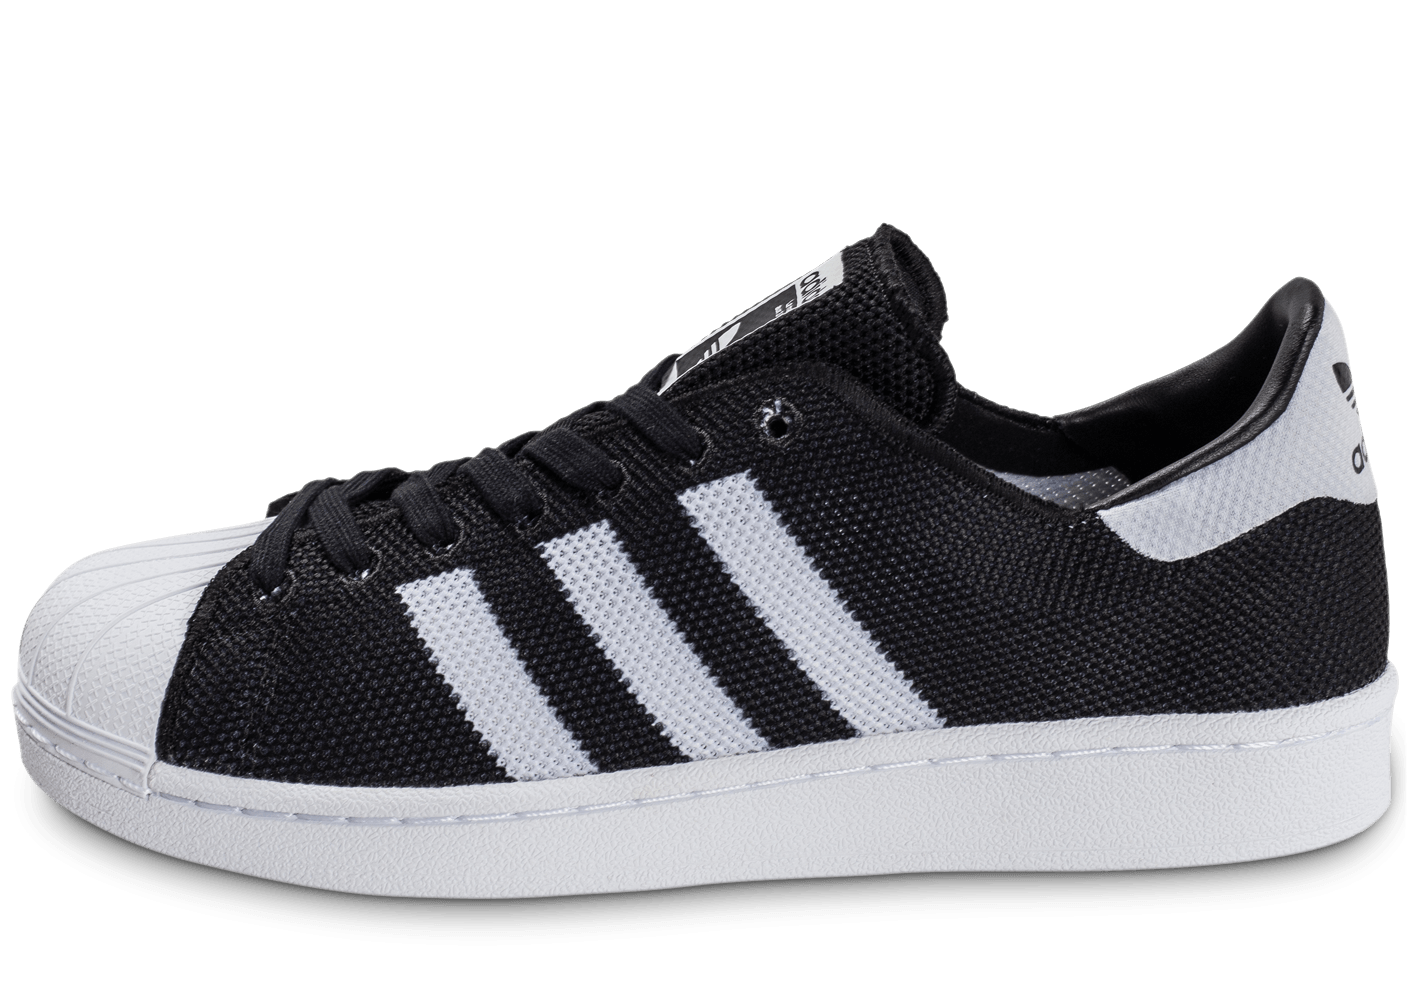 superstars adidas noir